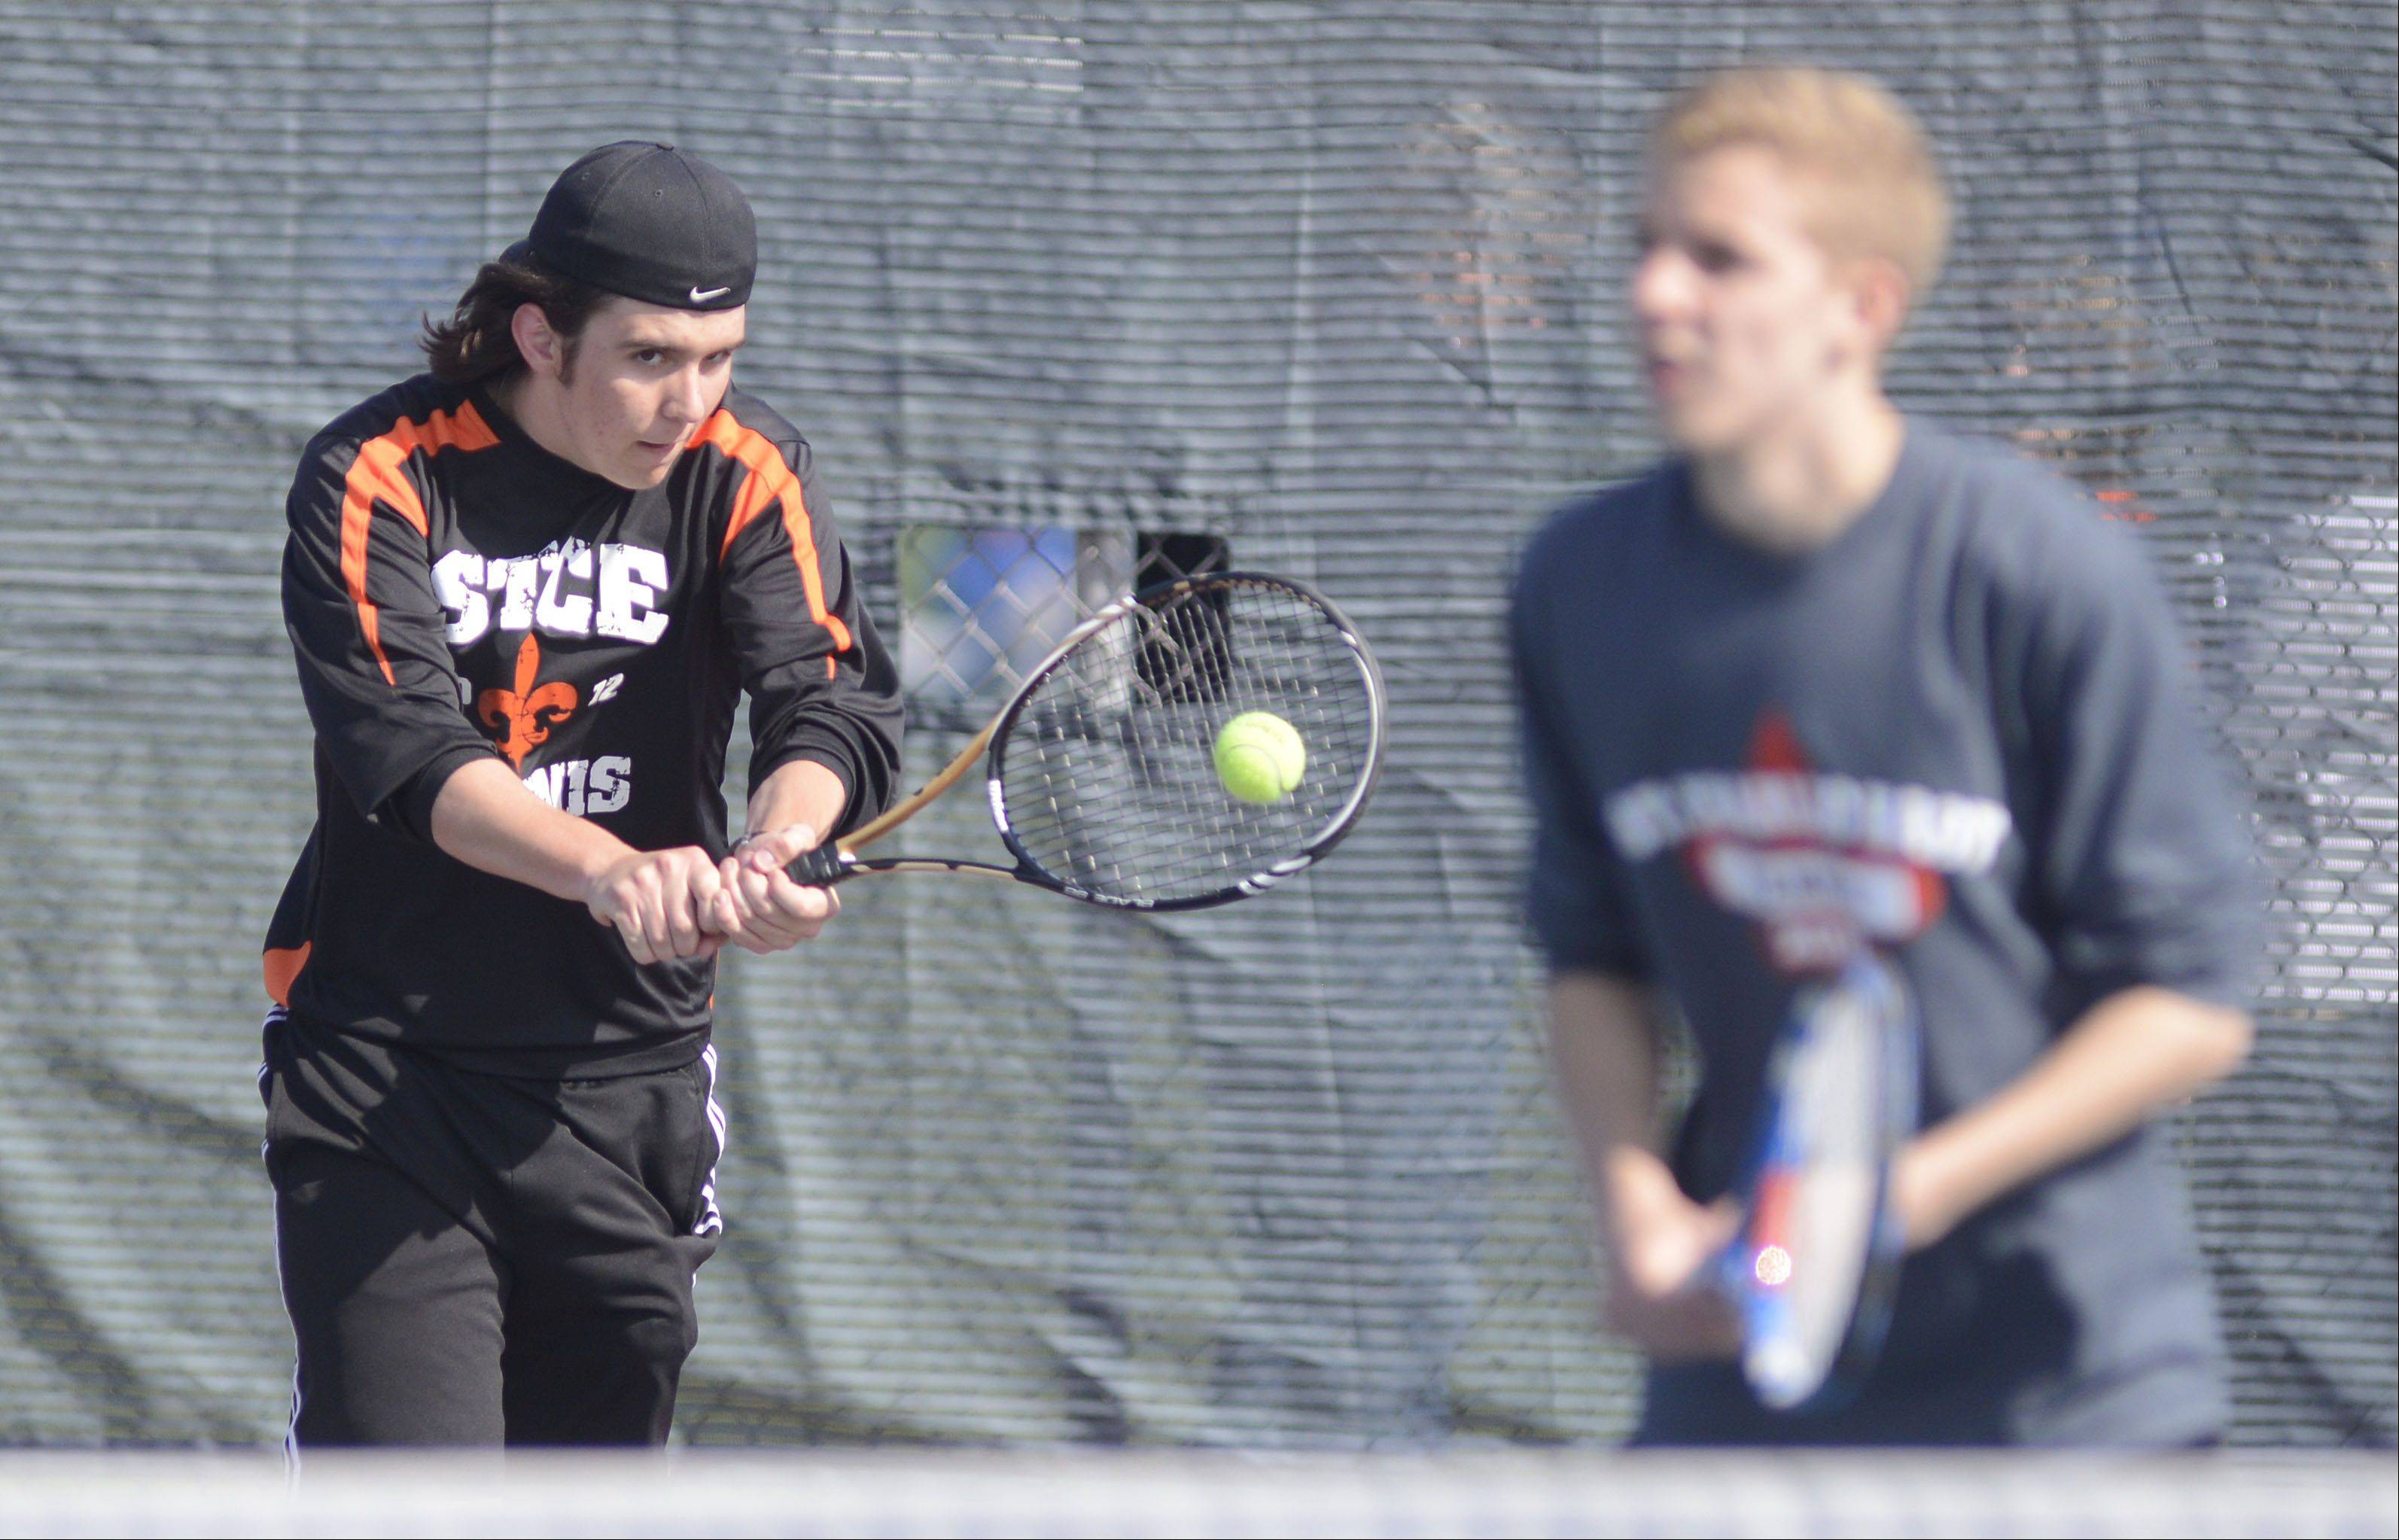 St. Charles East�s George Spoerl, left, and teammate Matt McCarthy in first doubles match vs. Glenbard West�s Kenny Reick and Jack Kellenberger at West Aurora High School on Saturday, April 27.